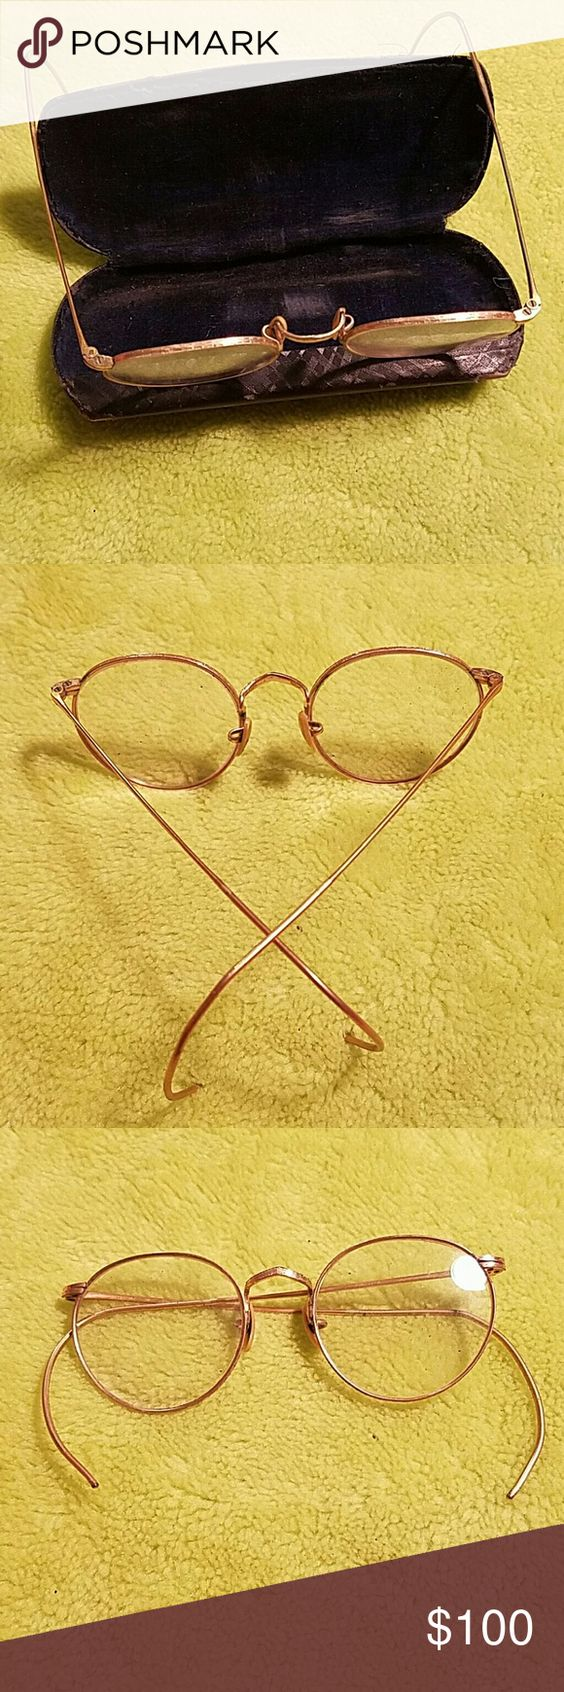 Vintage Wire Rim Glasses The glasses are in wonderful condition. The case shows considerable wear.  Excellent for decorating.....Gold tone unbranded  Accessories Glasses